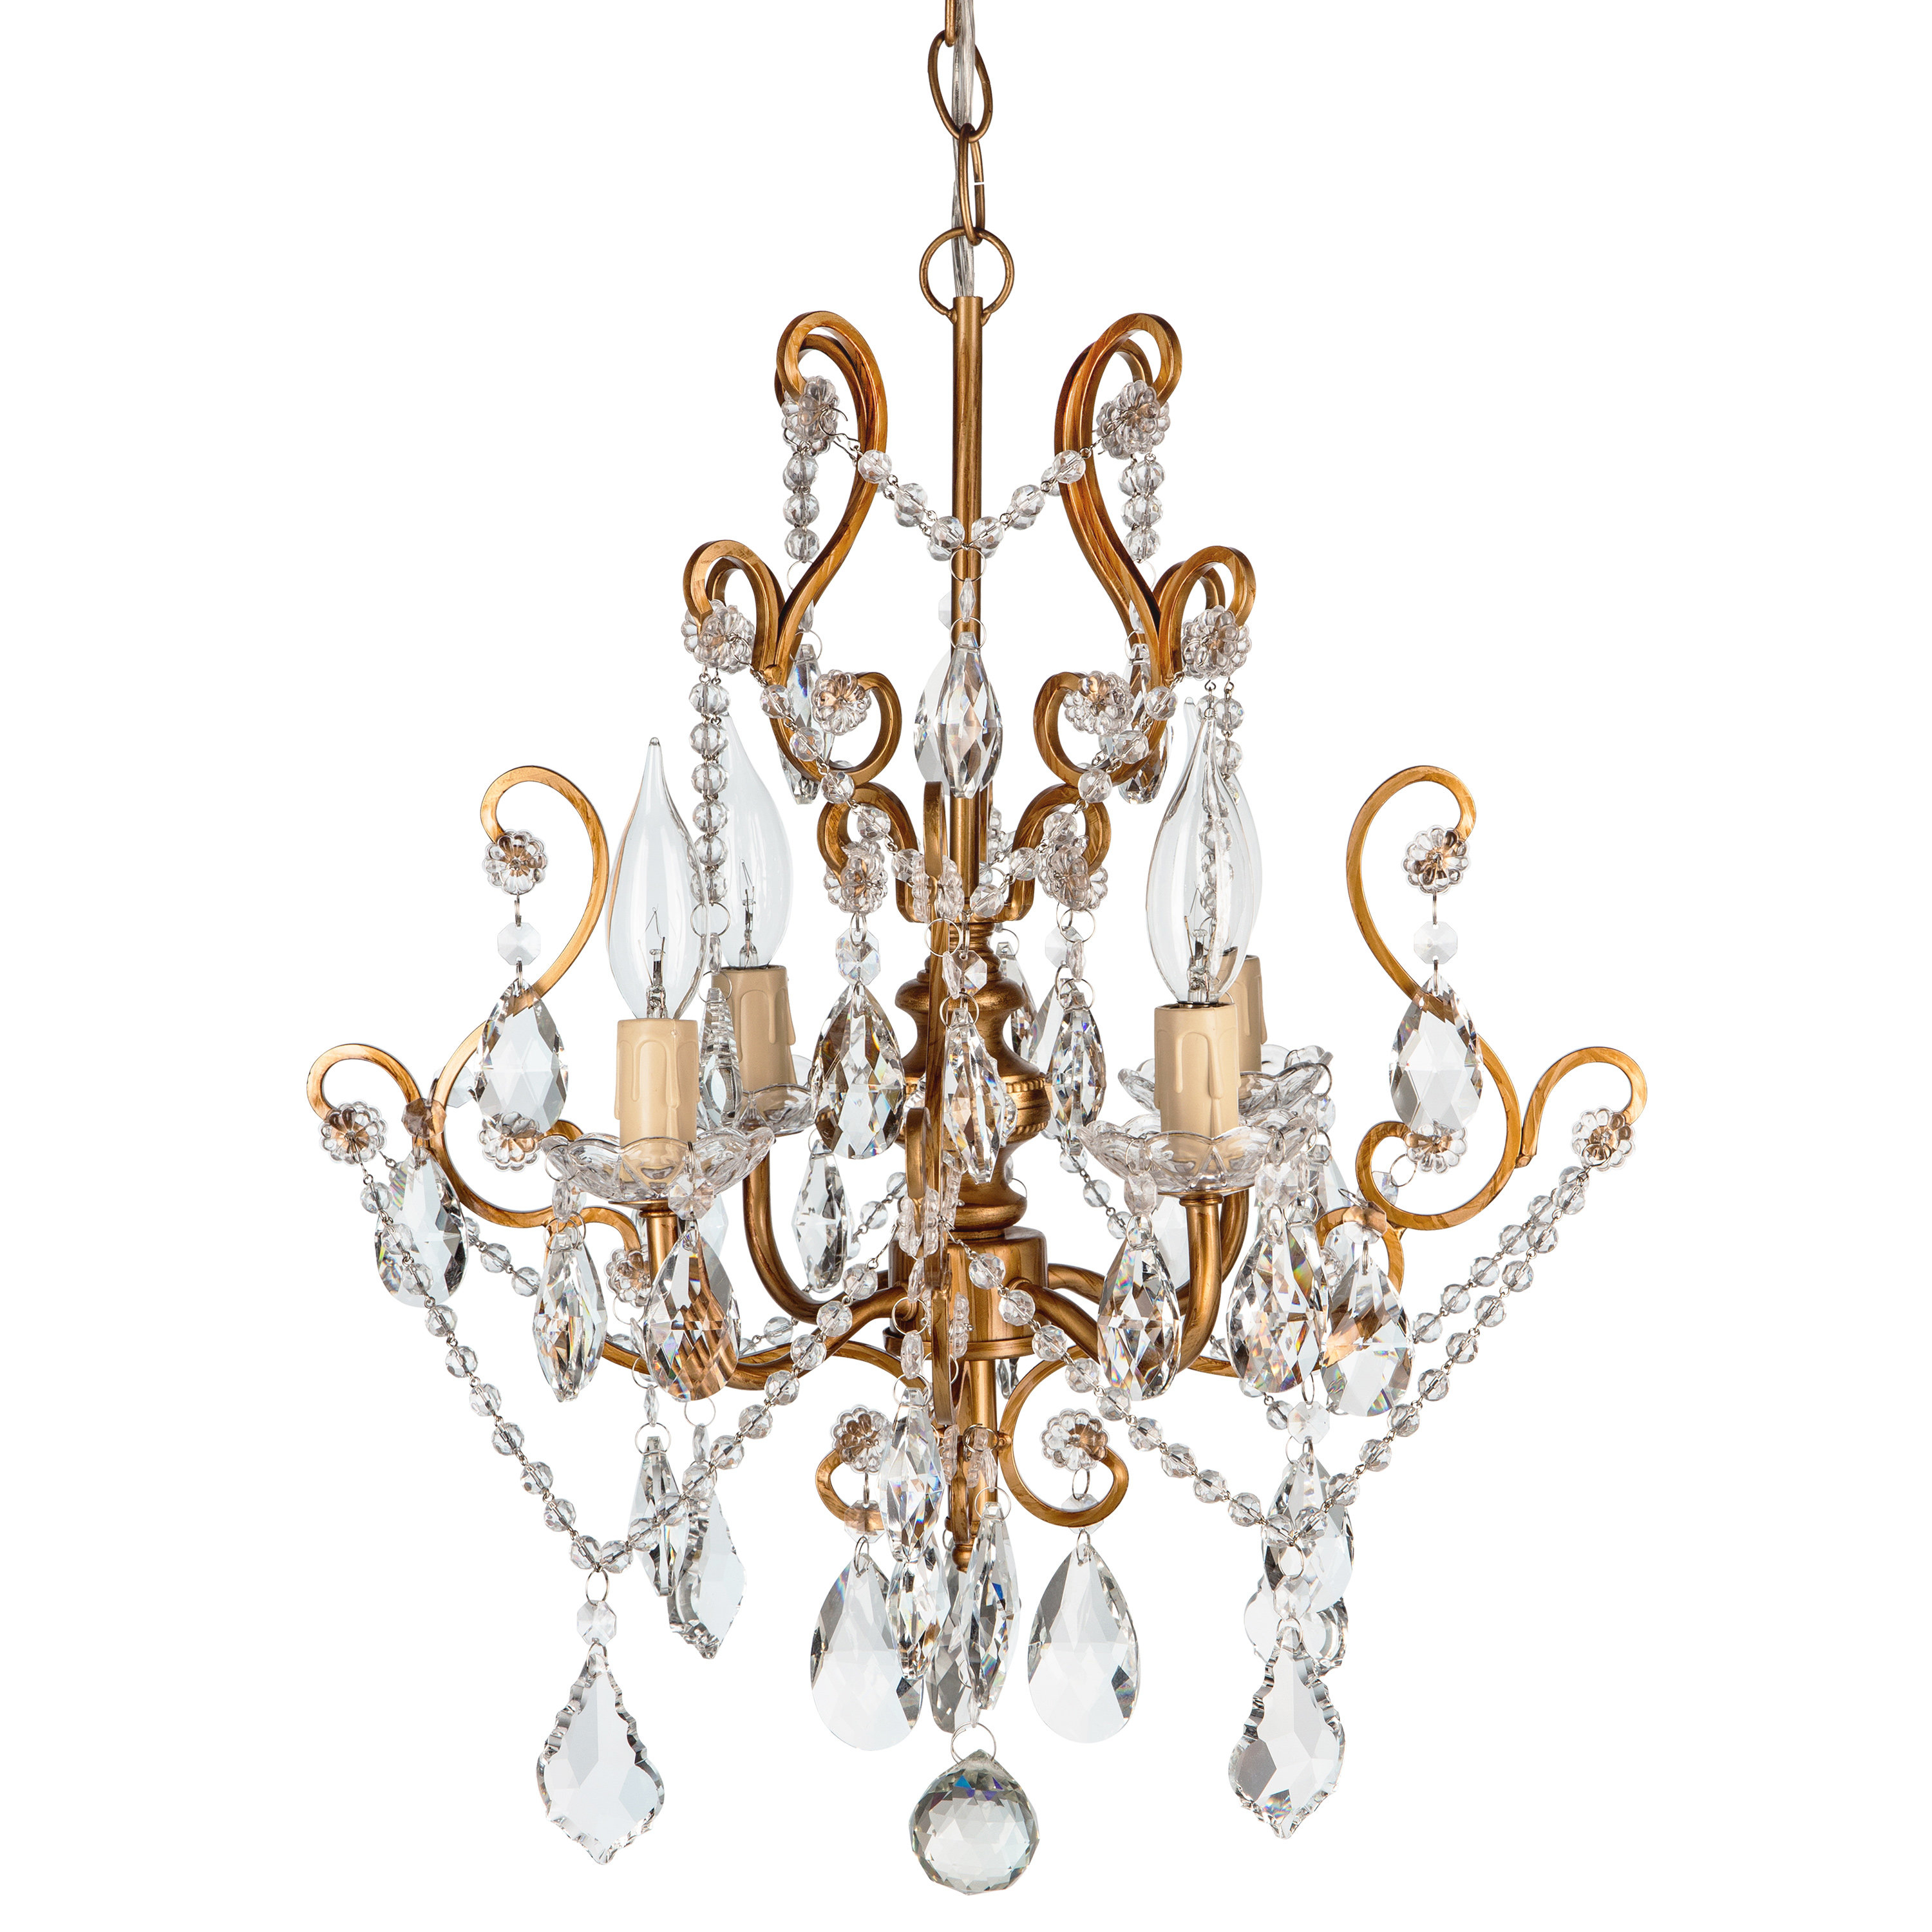 Aldora 4 Light Candle Style Chandeliers Pertaining To Widely Used Flemington 4 Light Candle Style Chandelier (View 11 of 20)